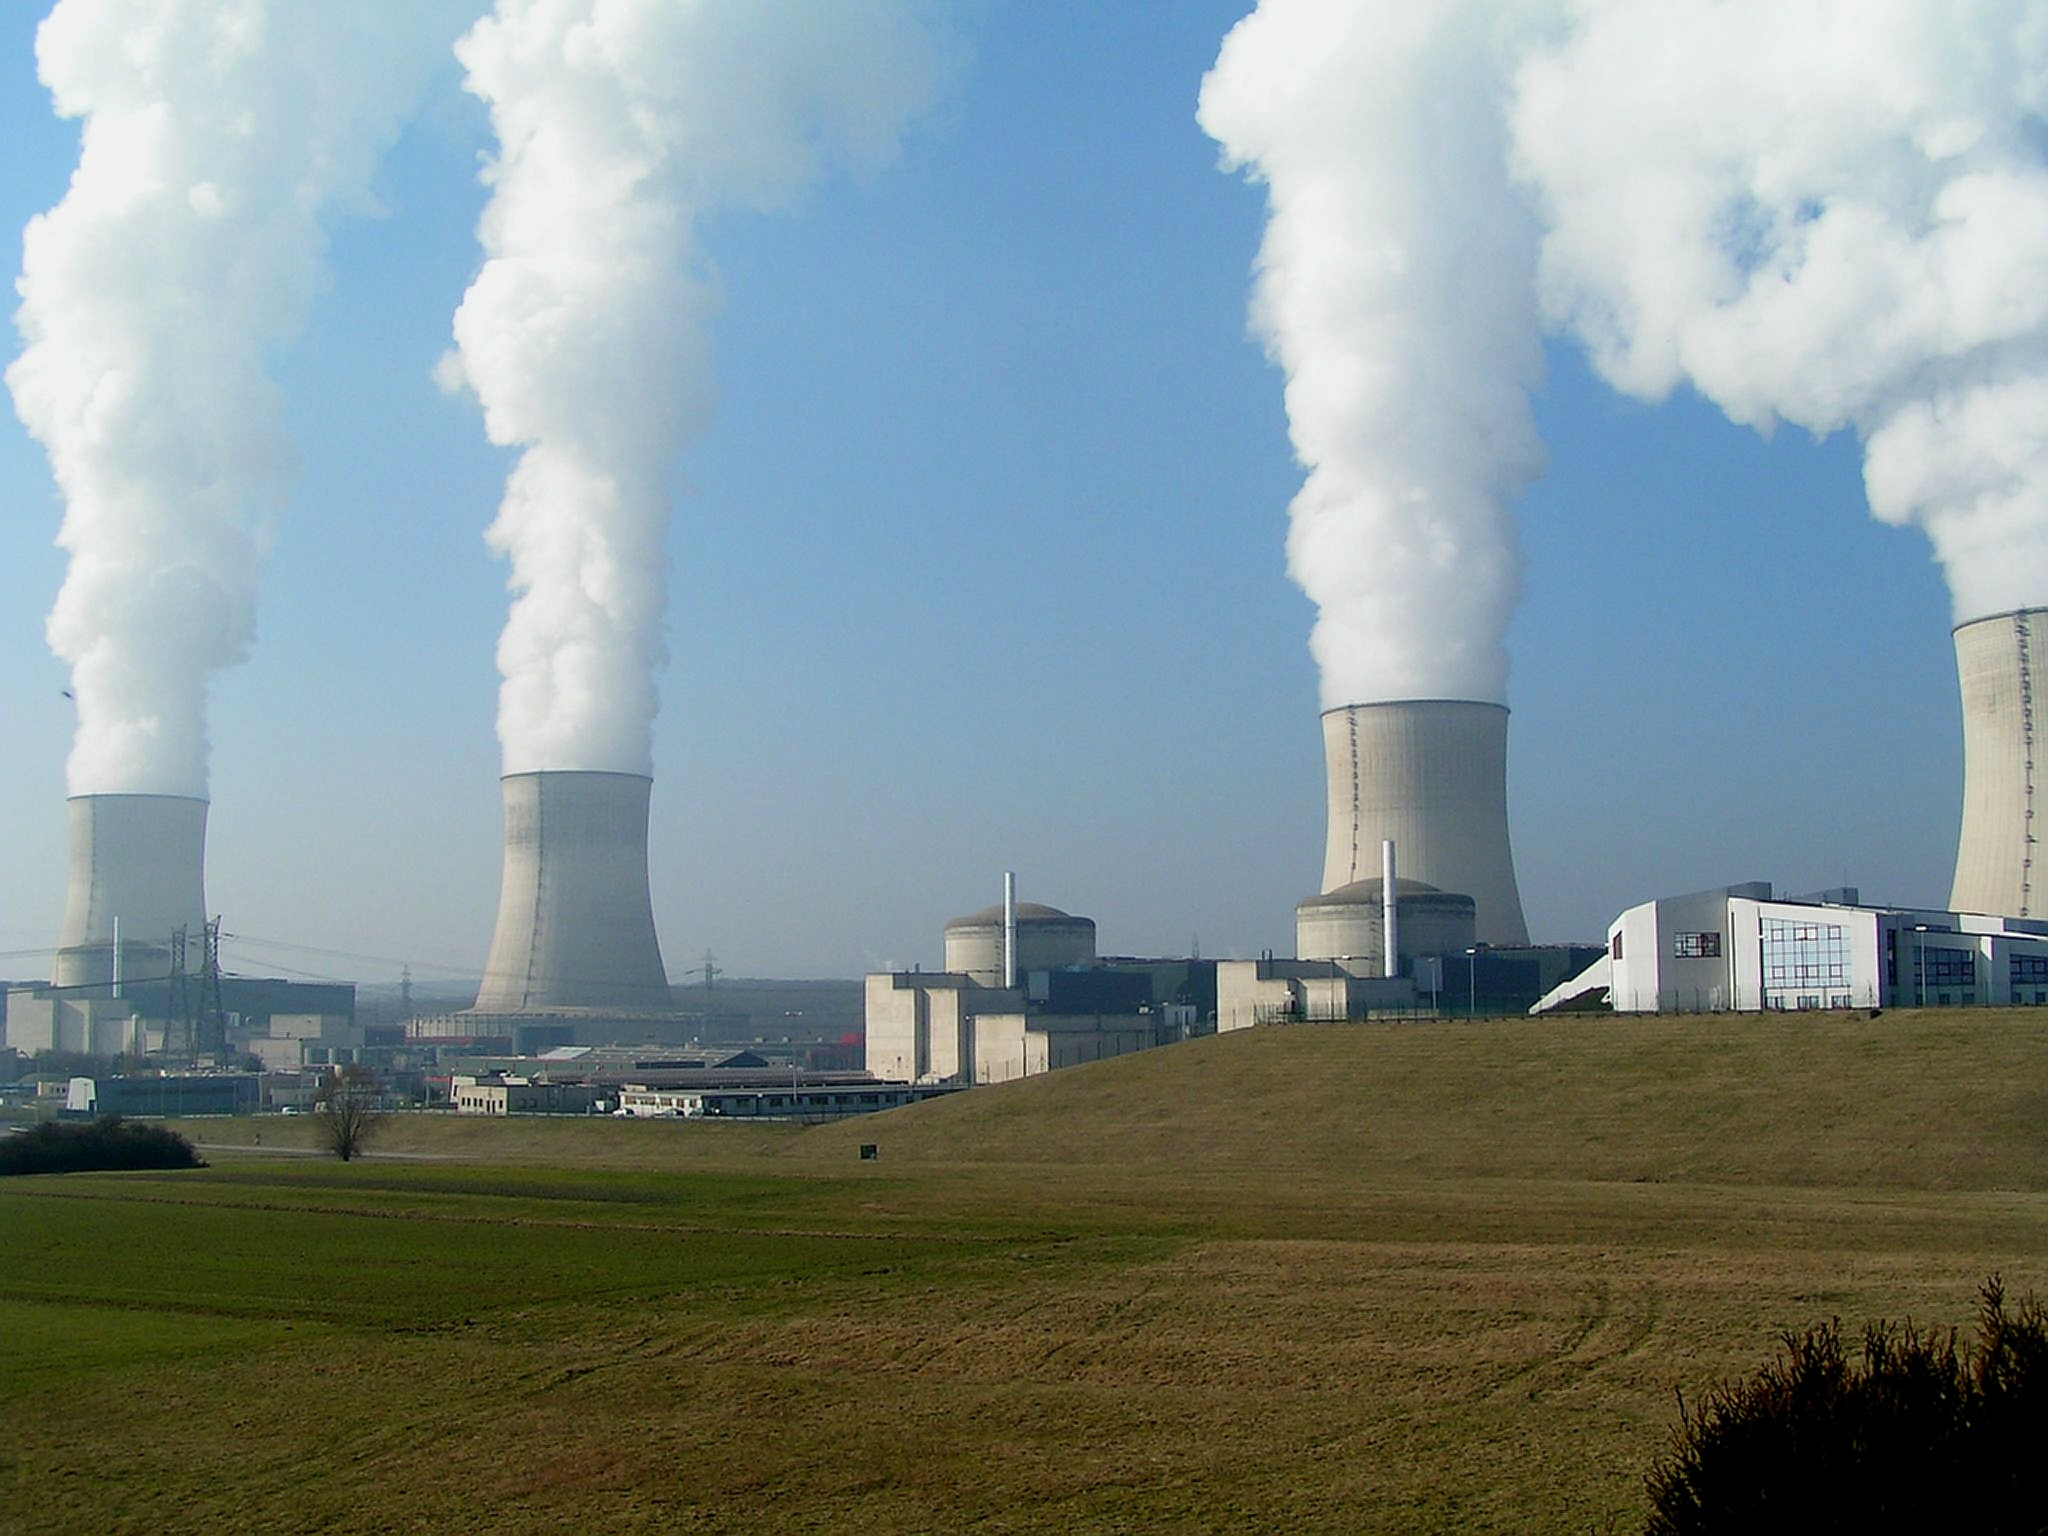 The Cattenom Nuclear power plant in France